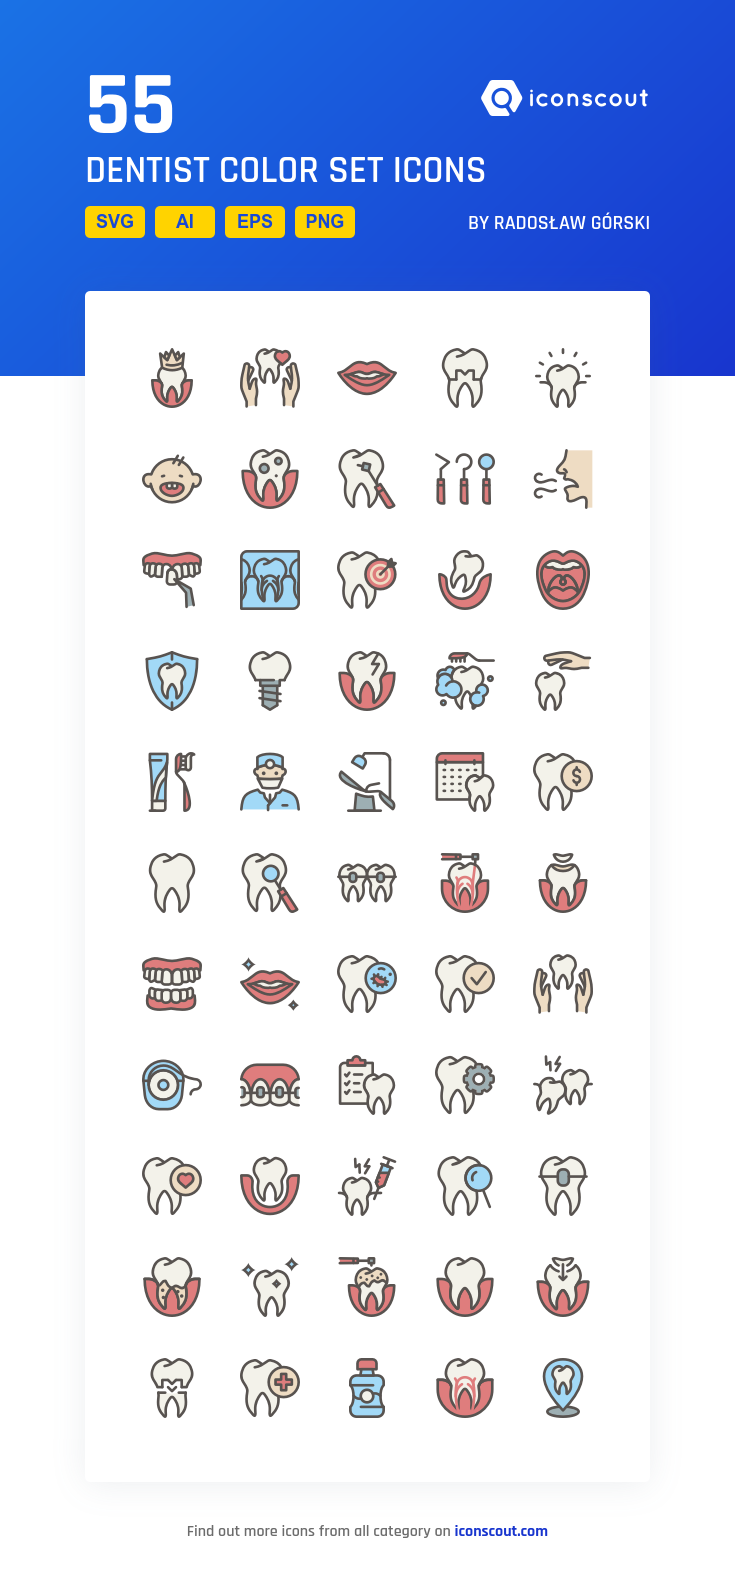 Download Dentist Color Set Icon pack Available in SVG